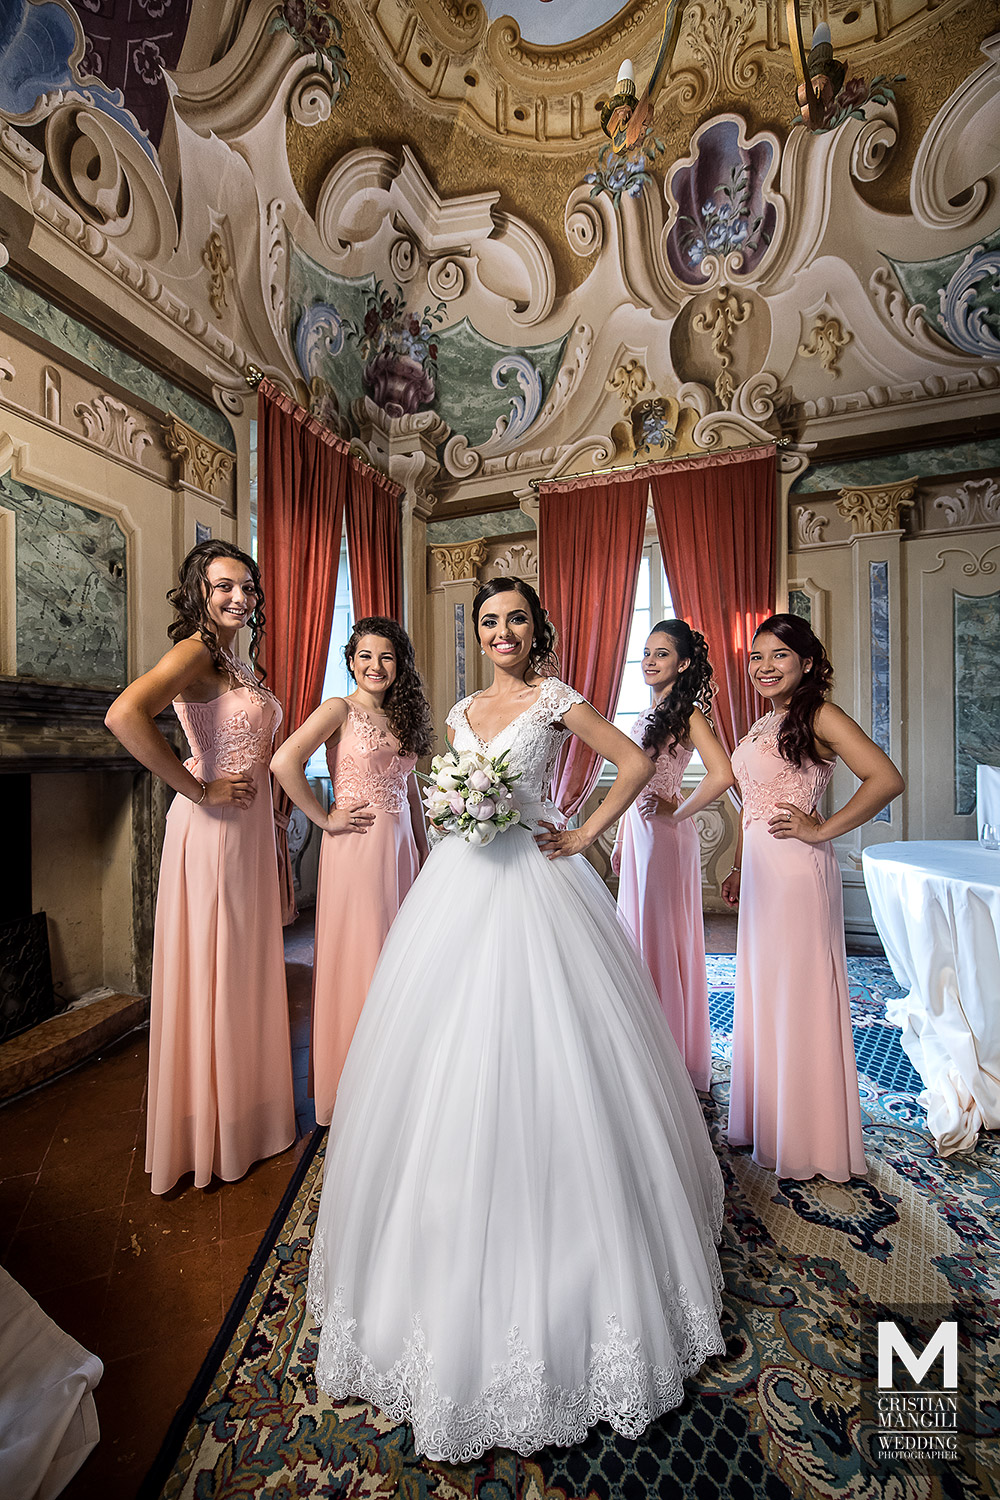 wedding-in-italy-wife-and-bridesmaids-professional-wedding-photographer